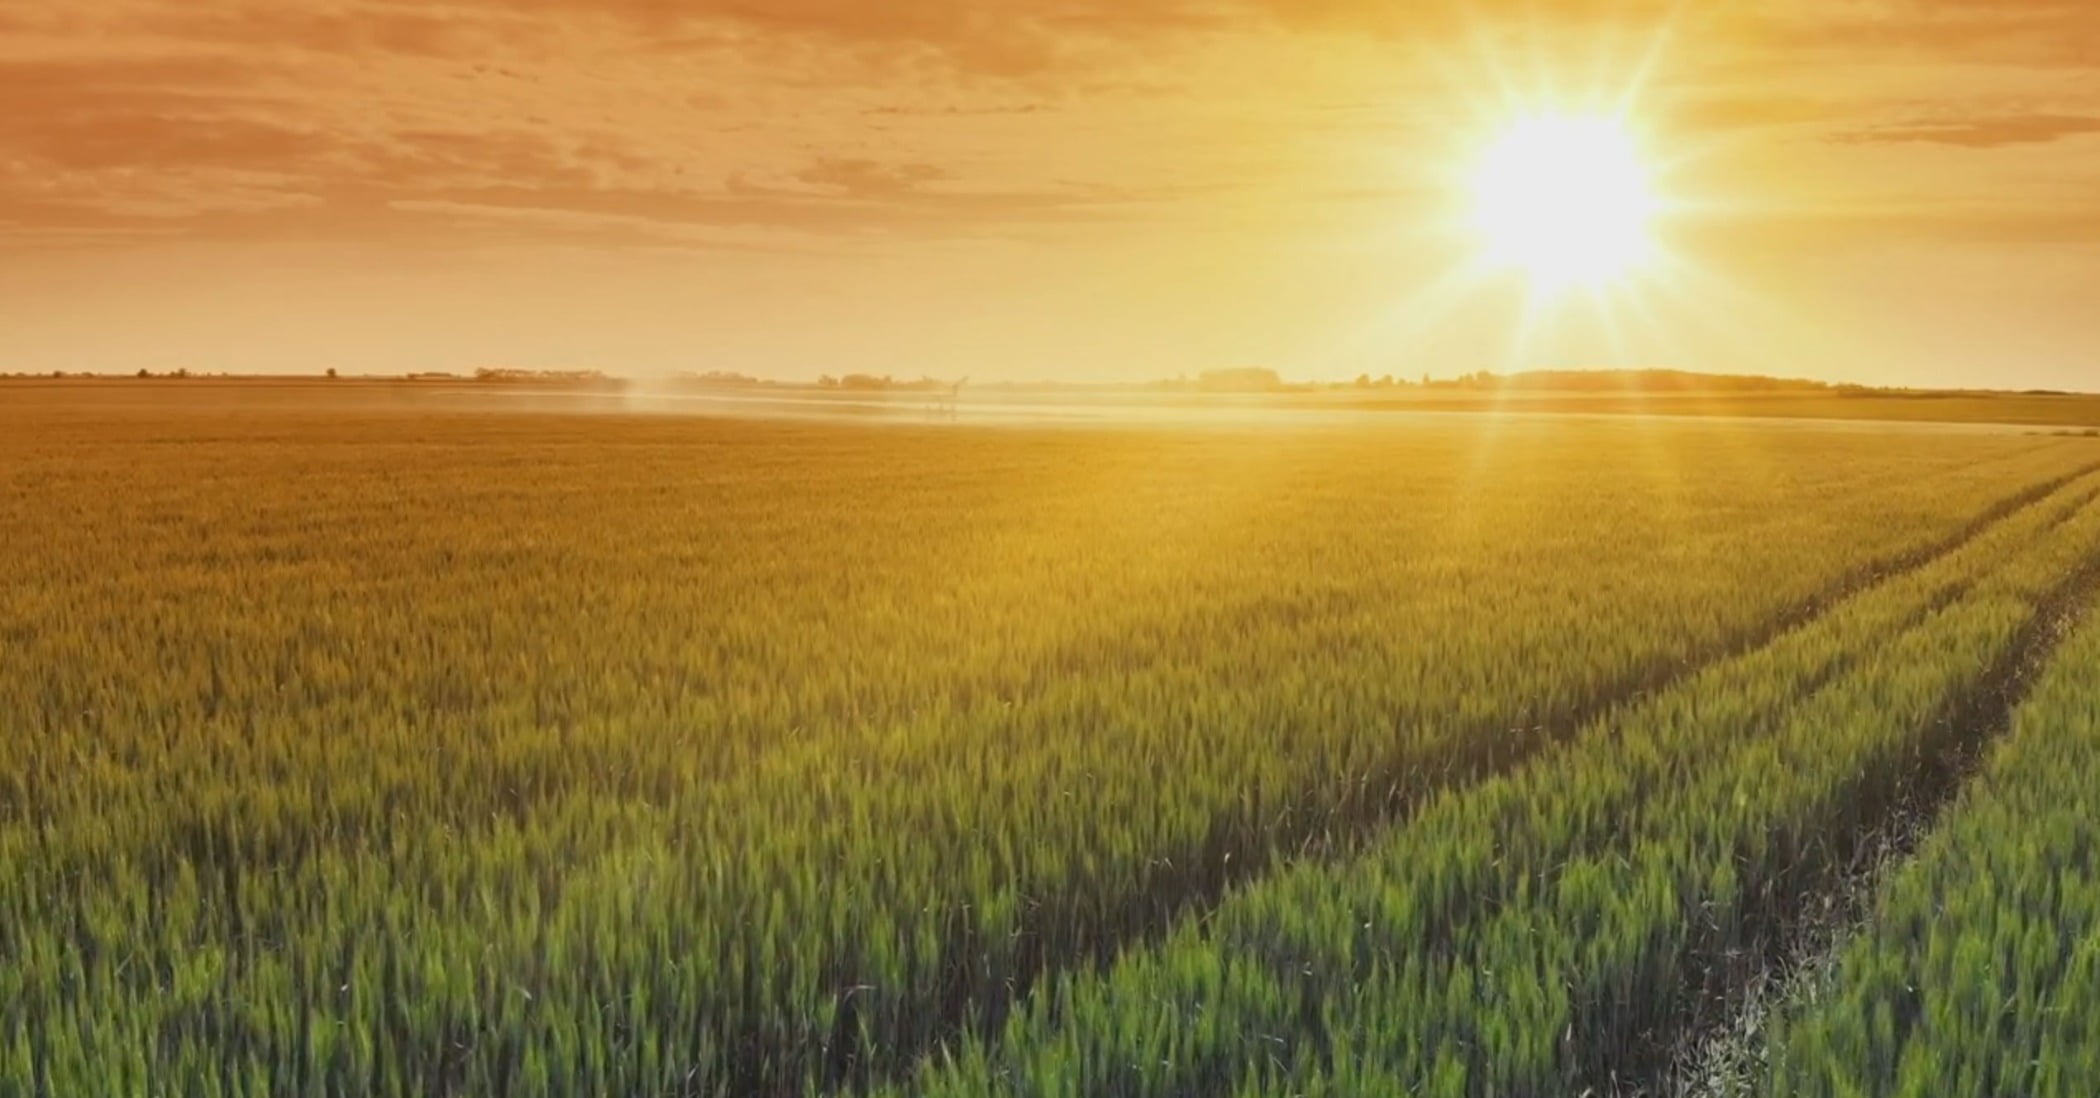 People in nature, Natural landscape, Atmospheric phenomenon, Cloud, Sky, Plant, Ecoregion, Afterglow, Sunlight, Agriculture